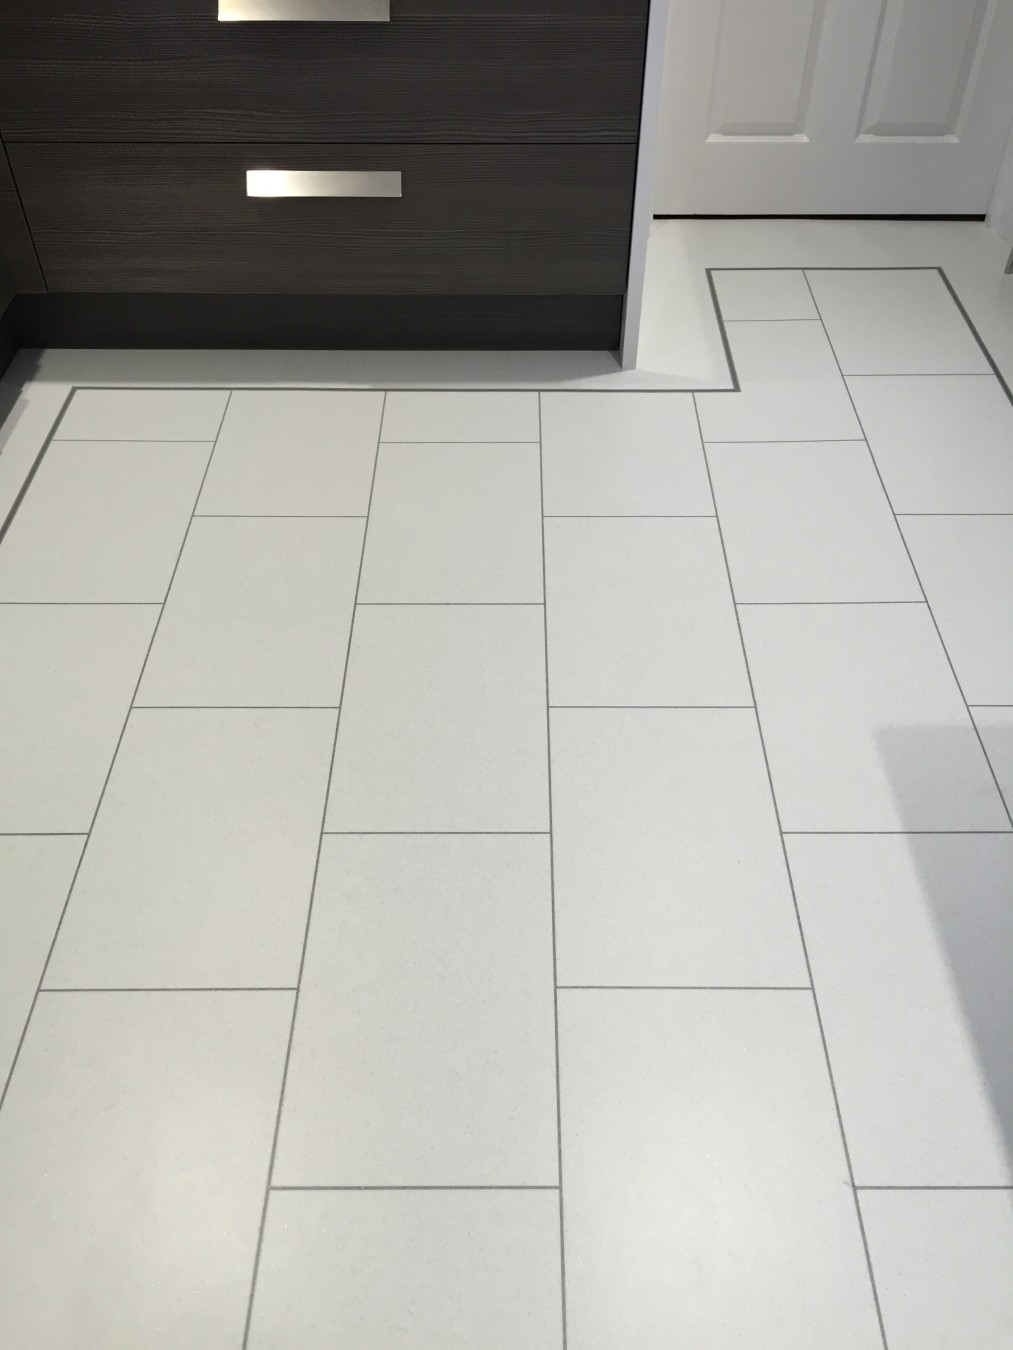 Bright room with white tile flooring black cabinets and a white door